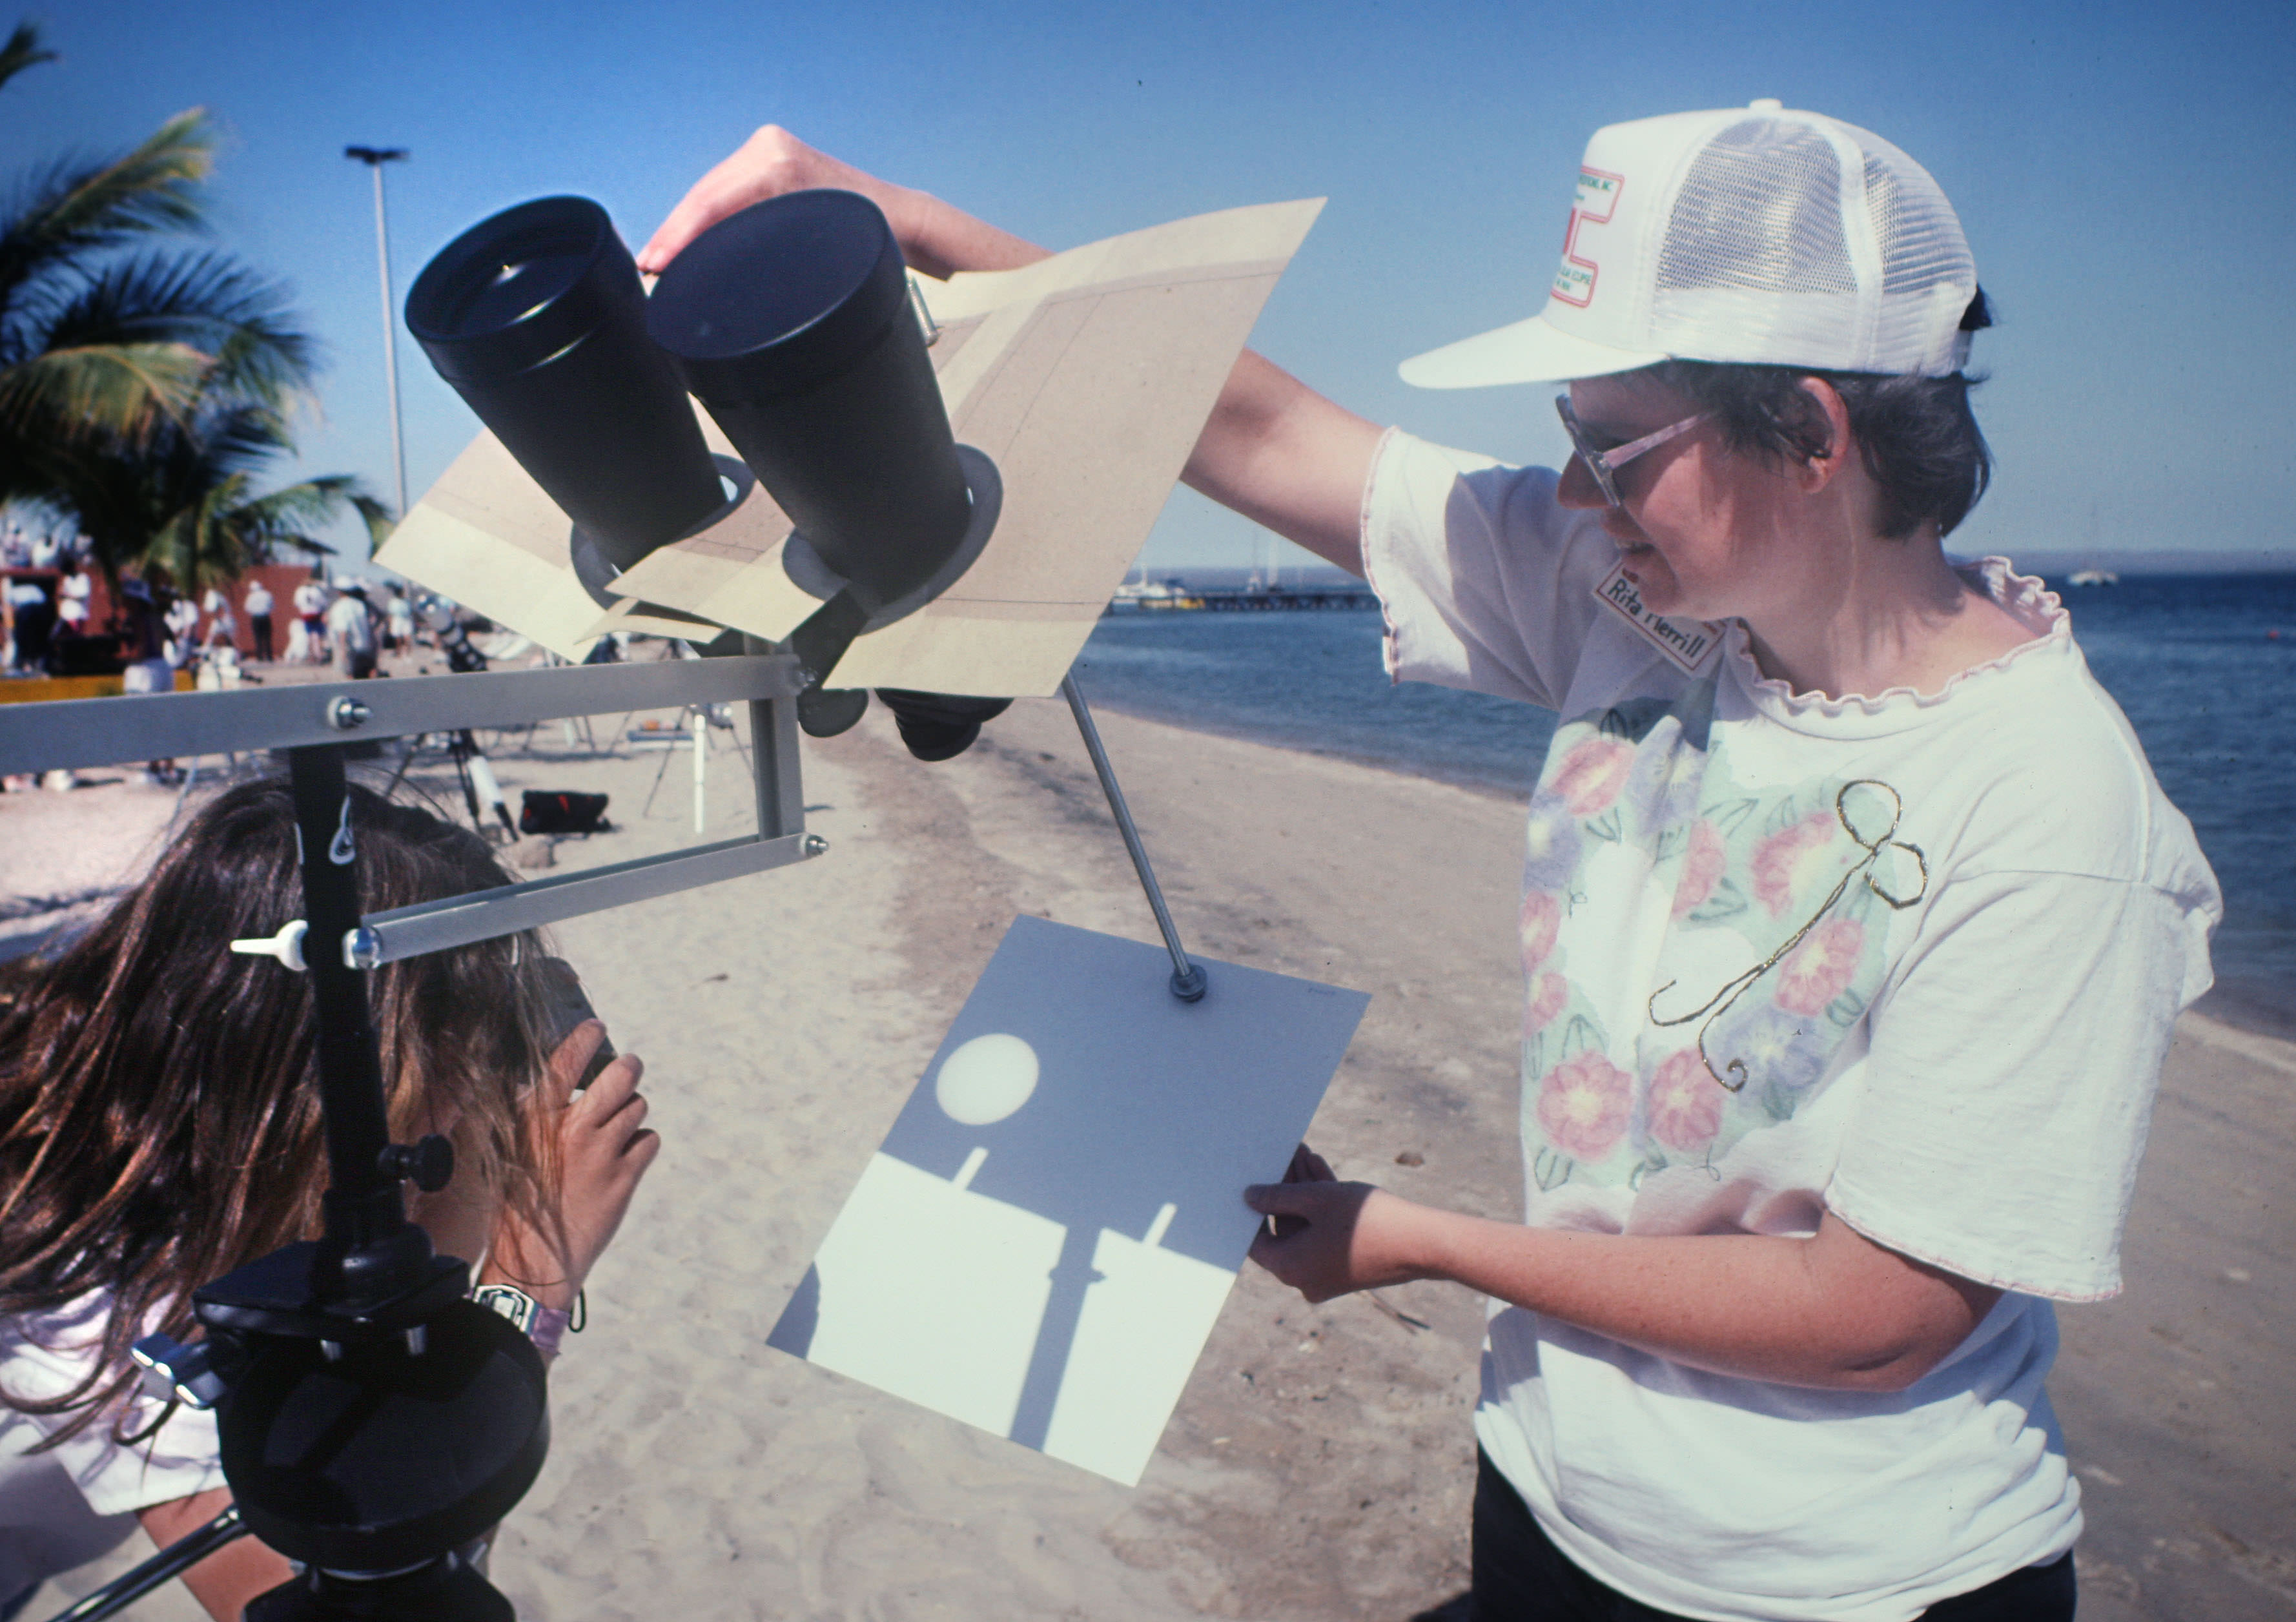 how to make eclipse viewer with your hands